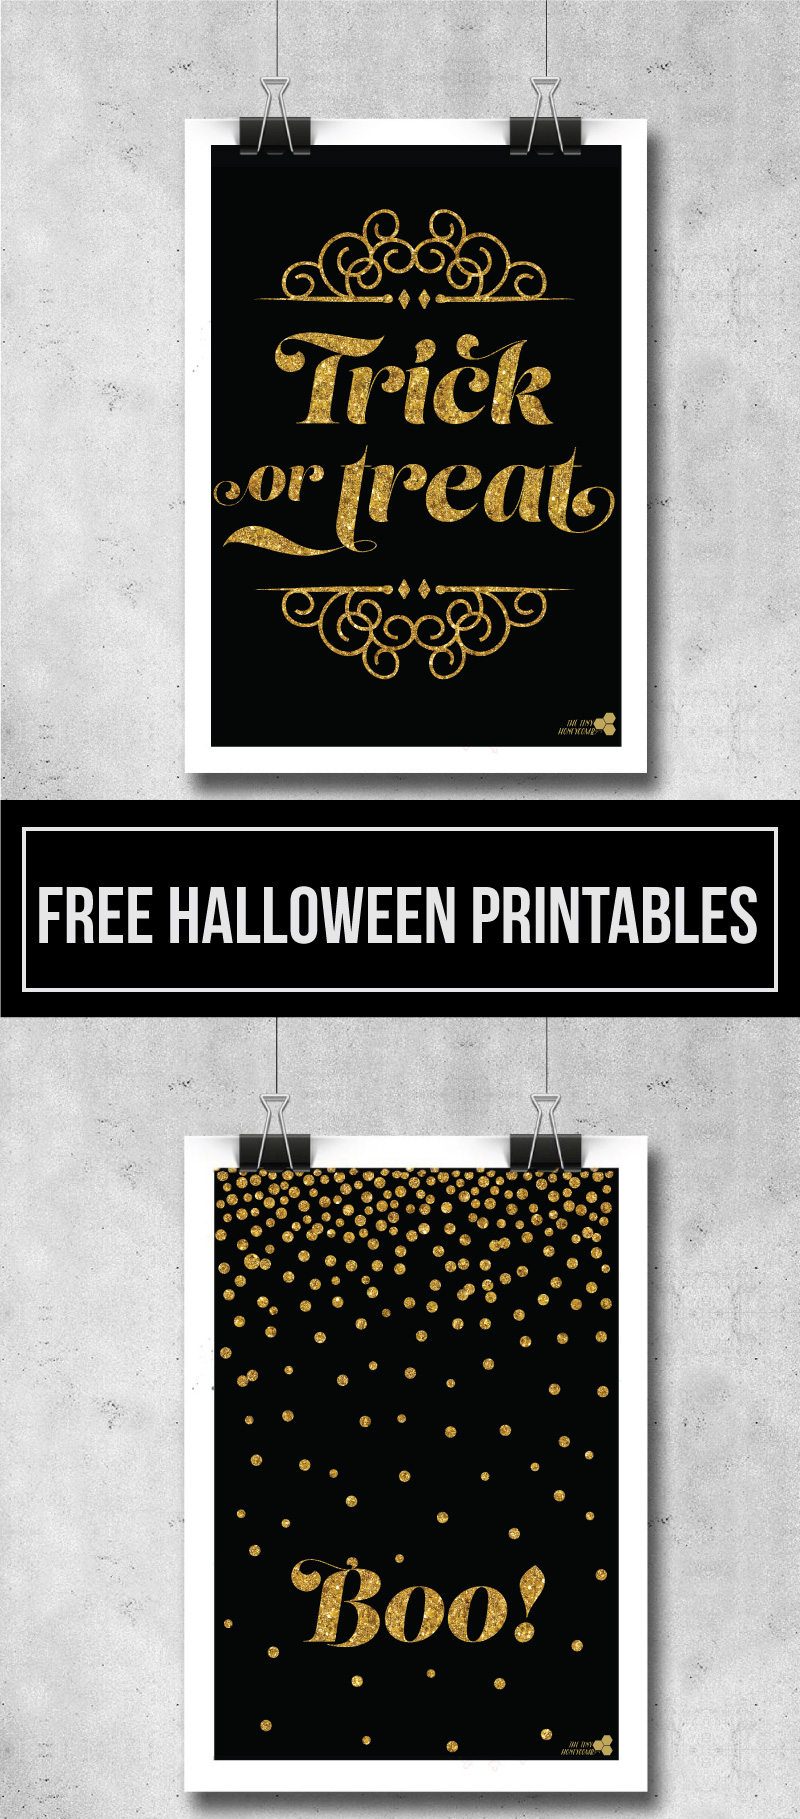 Free Printables for Halloween. Gold and black printables: Boo! and trick or treat. The tiny honeycomb blog